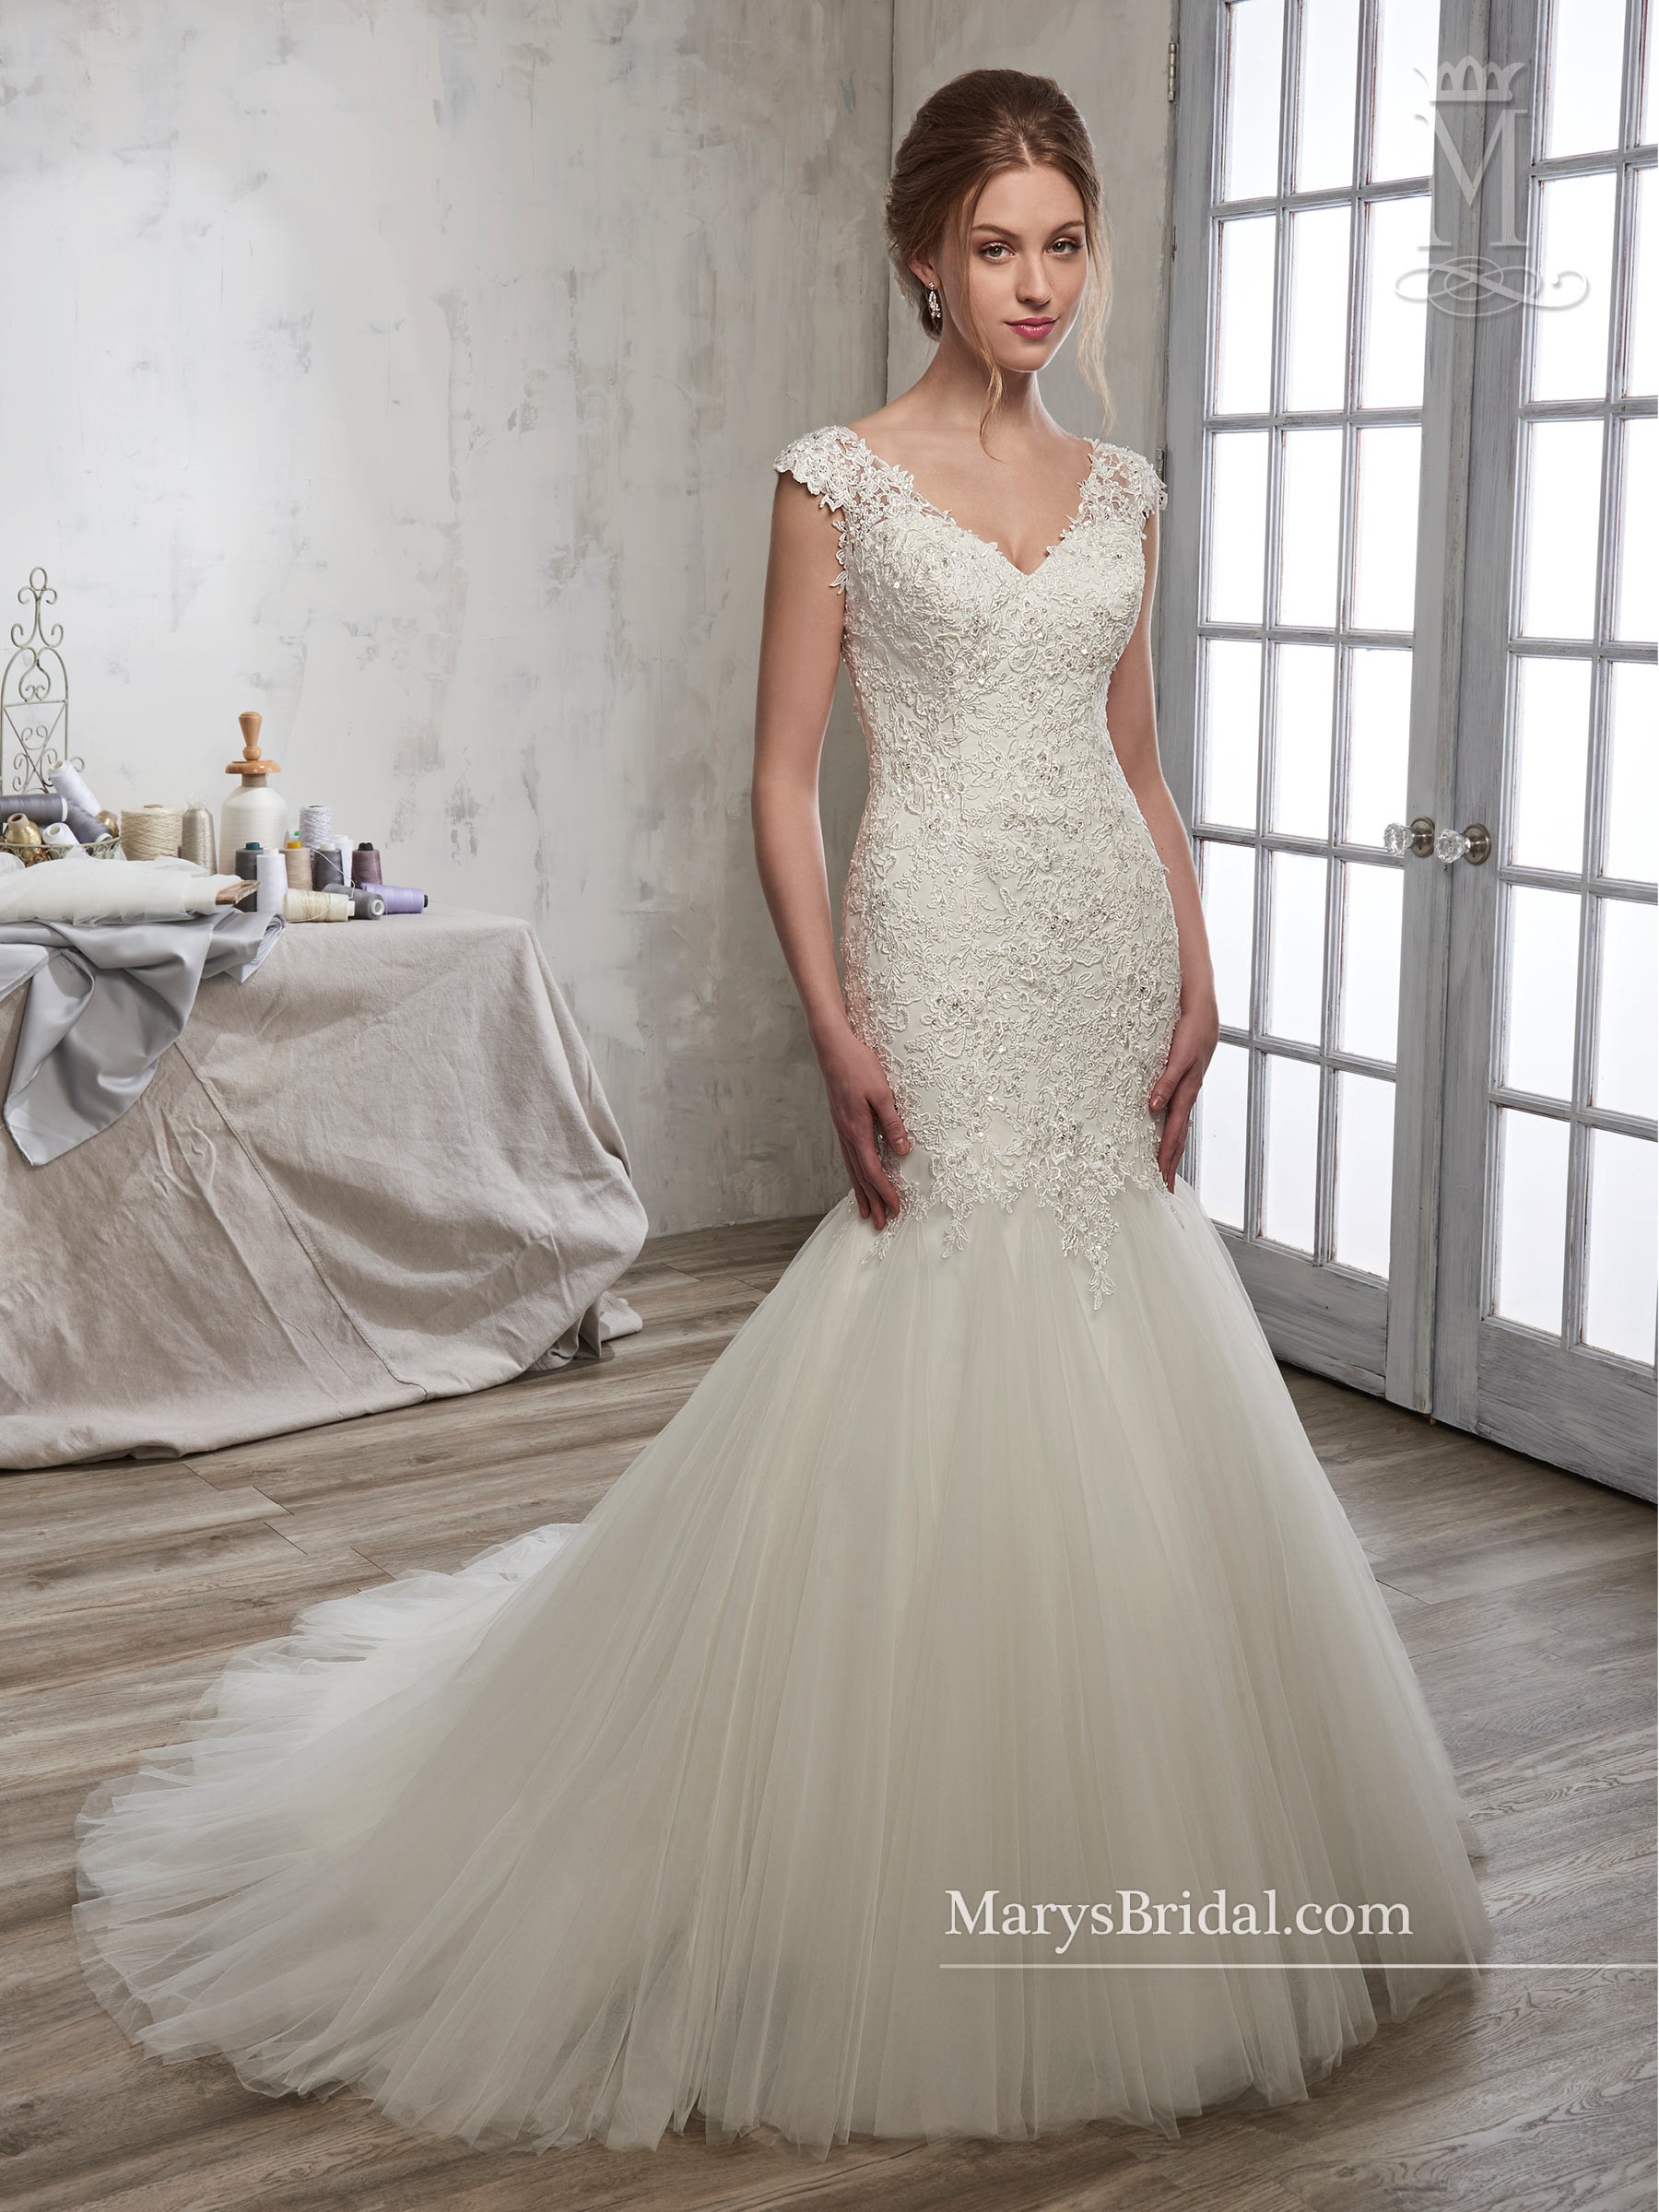 Mary's Bridal 6581 - Clearance Price : 1095$